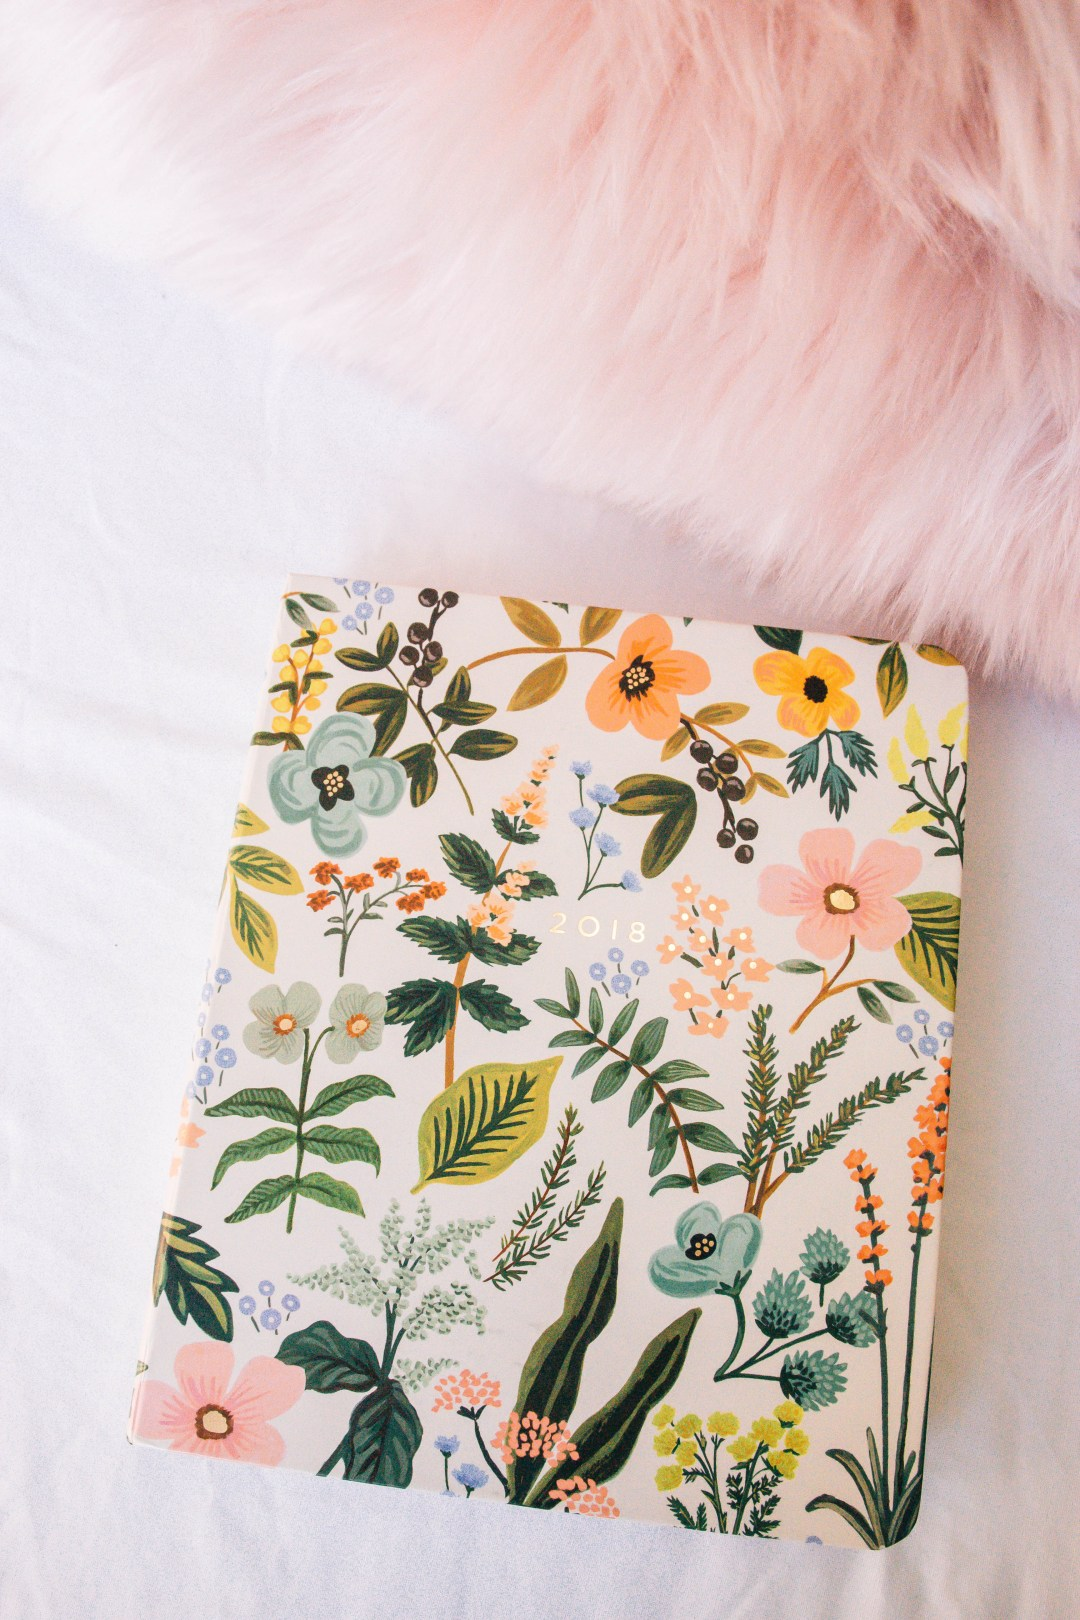 Rifle Paper Co 2018 Planner | What's in My Pink Bag | What I Can't Leave Without